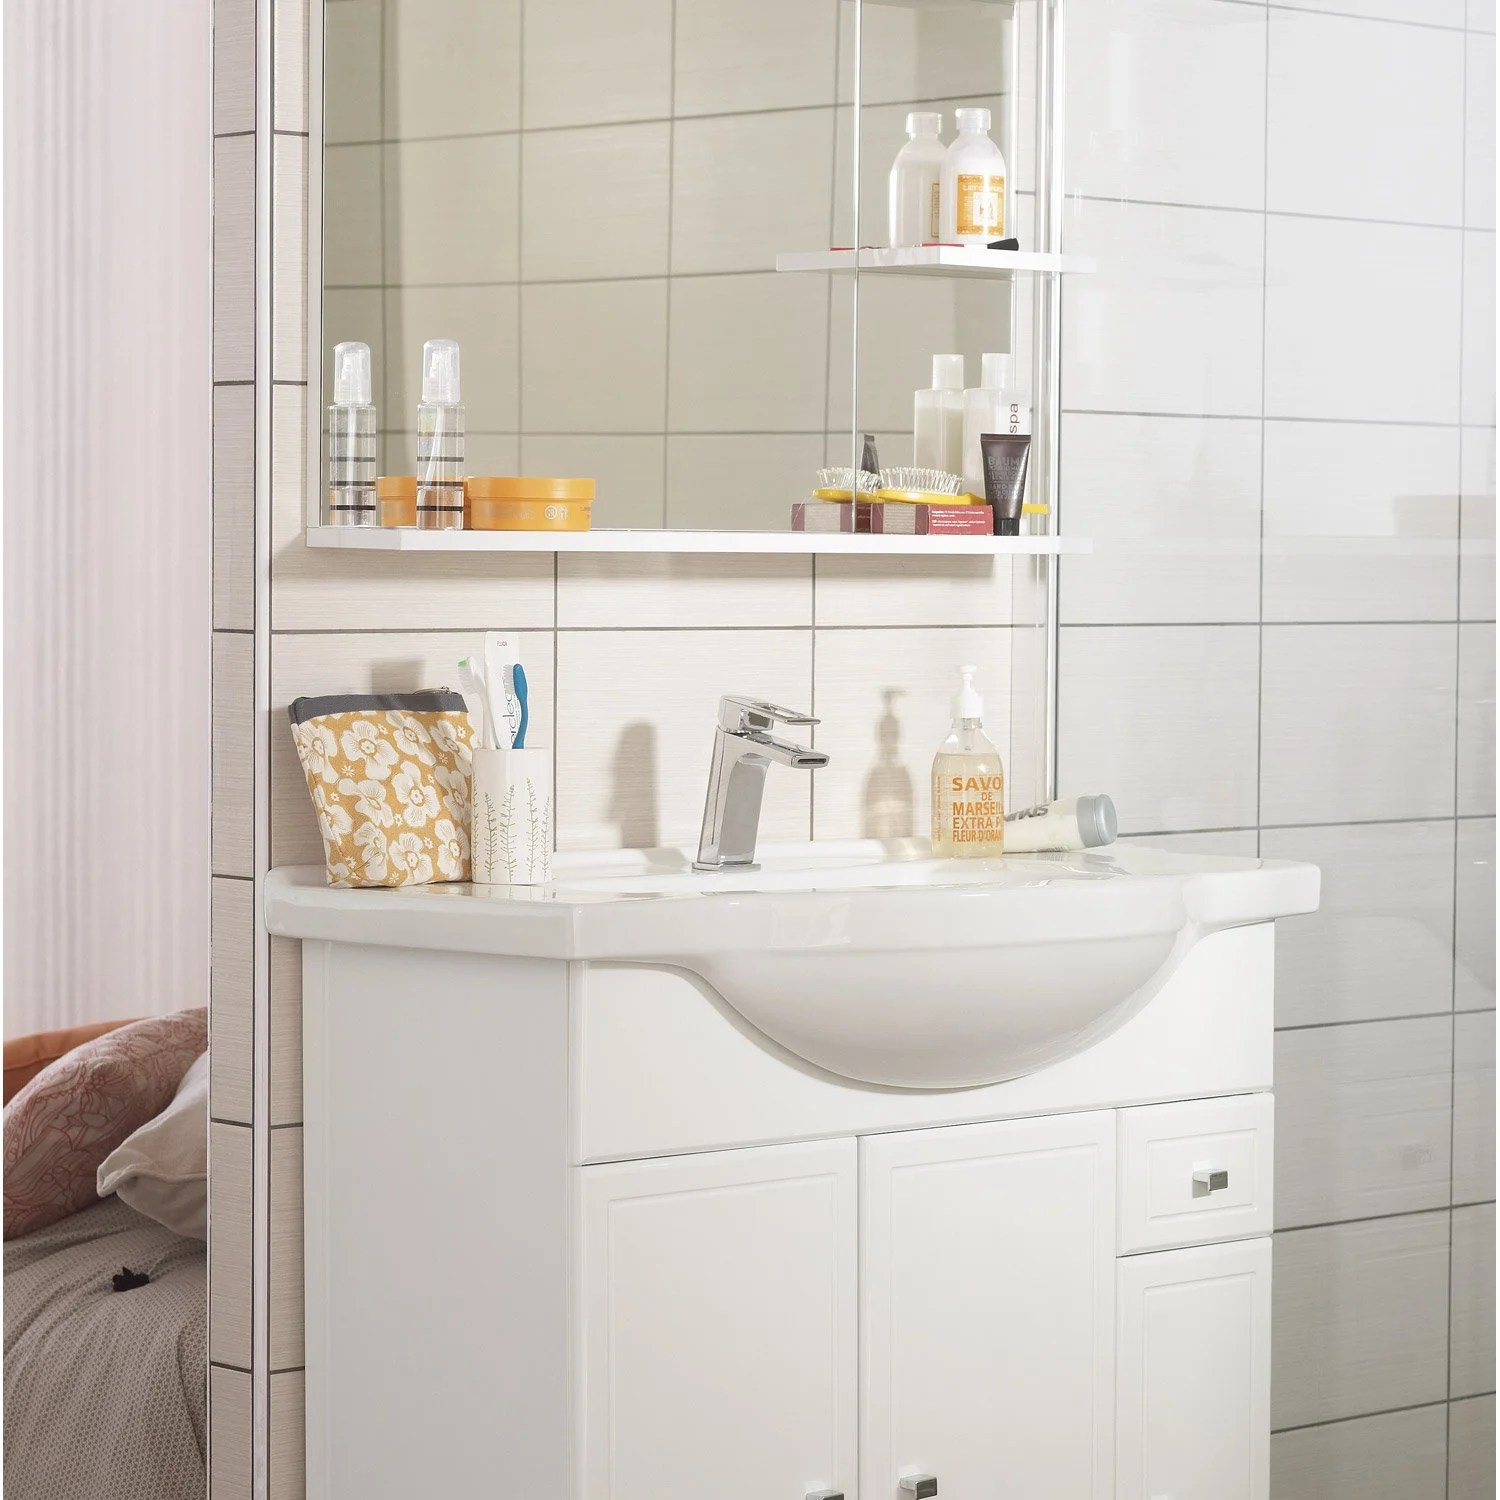 Meuble Vasque 70 Cm Leroy Merlin Meuble Vasque 85 Cm Blanc, Galice | Leroy Merlin